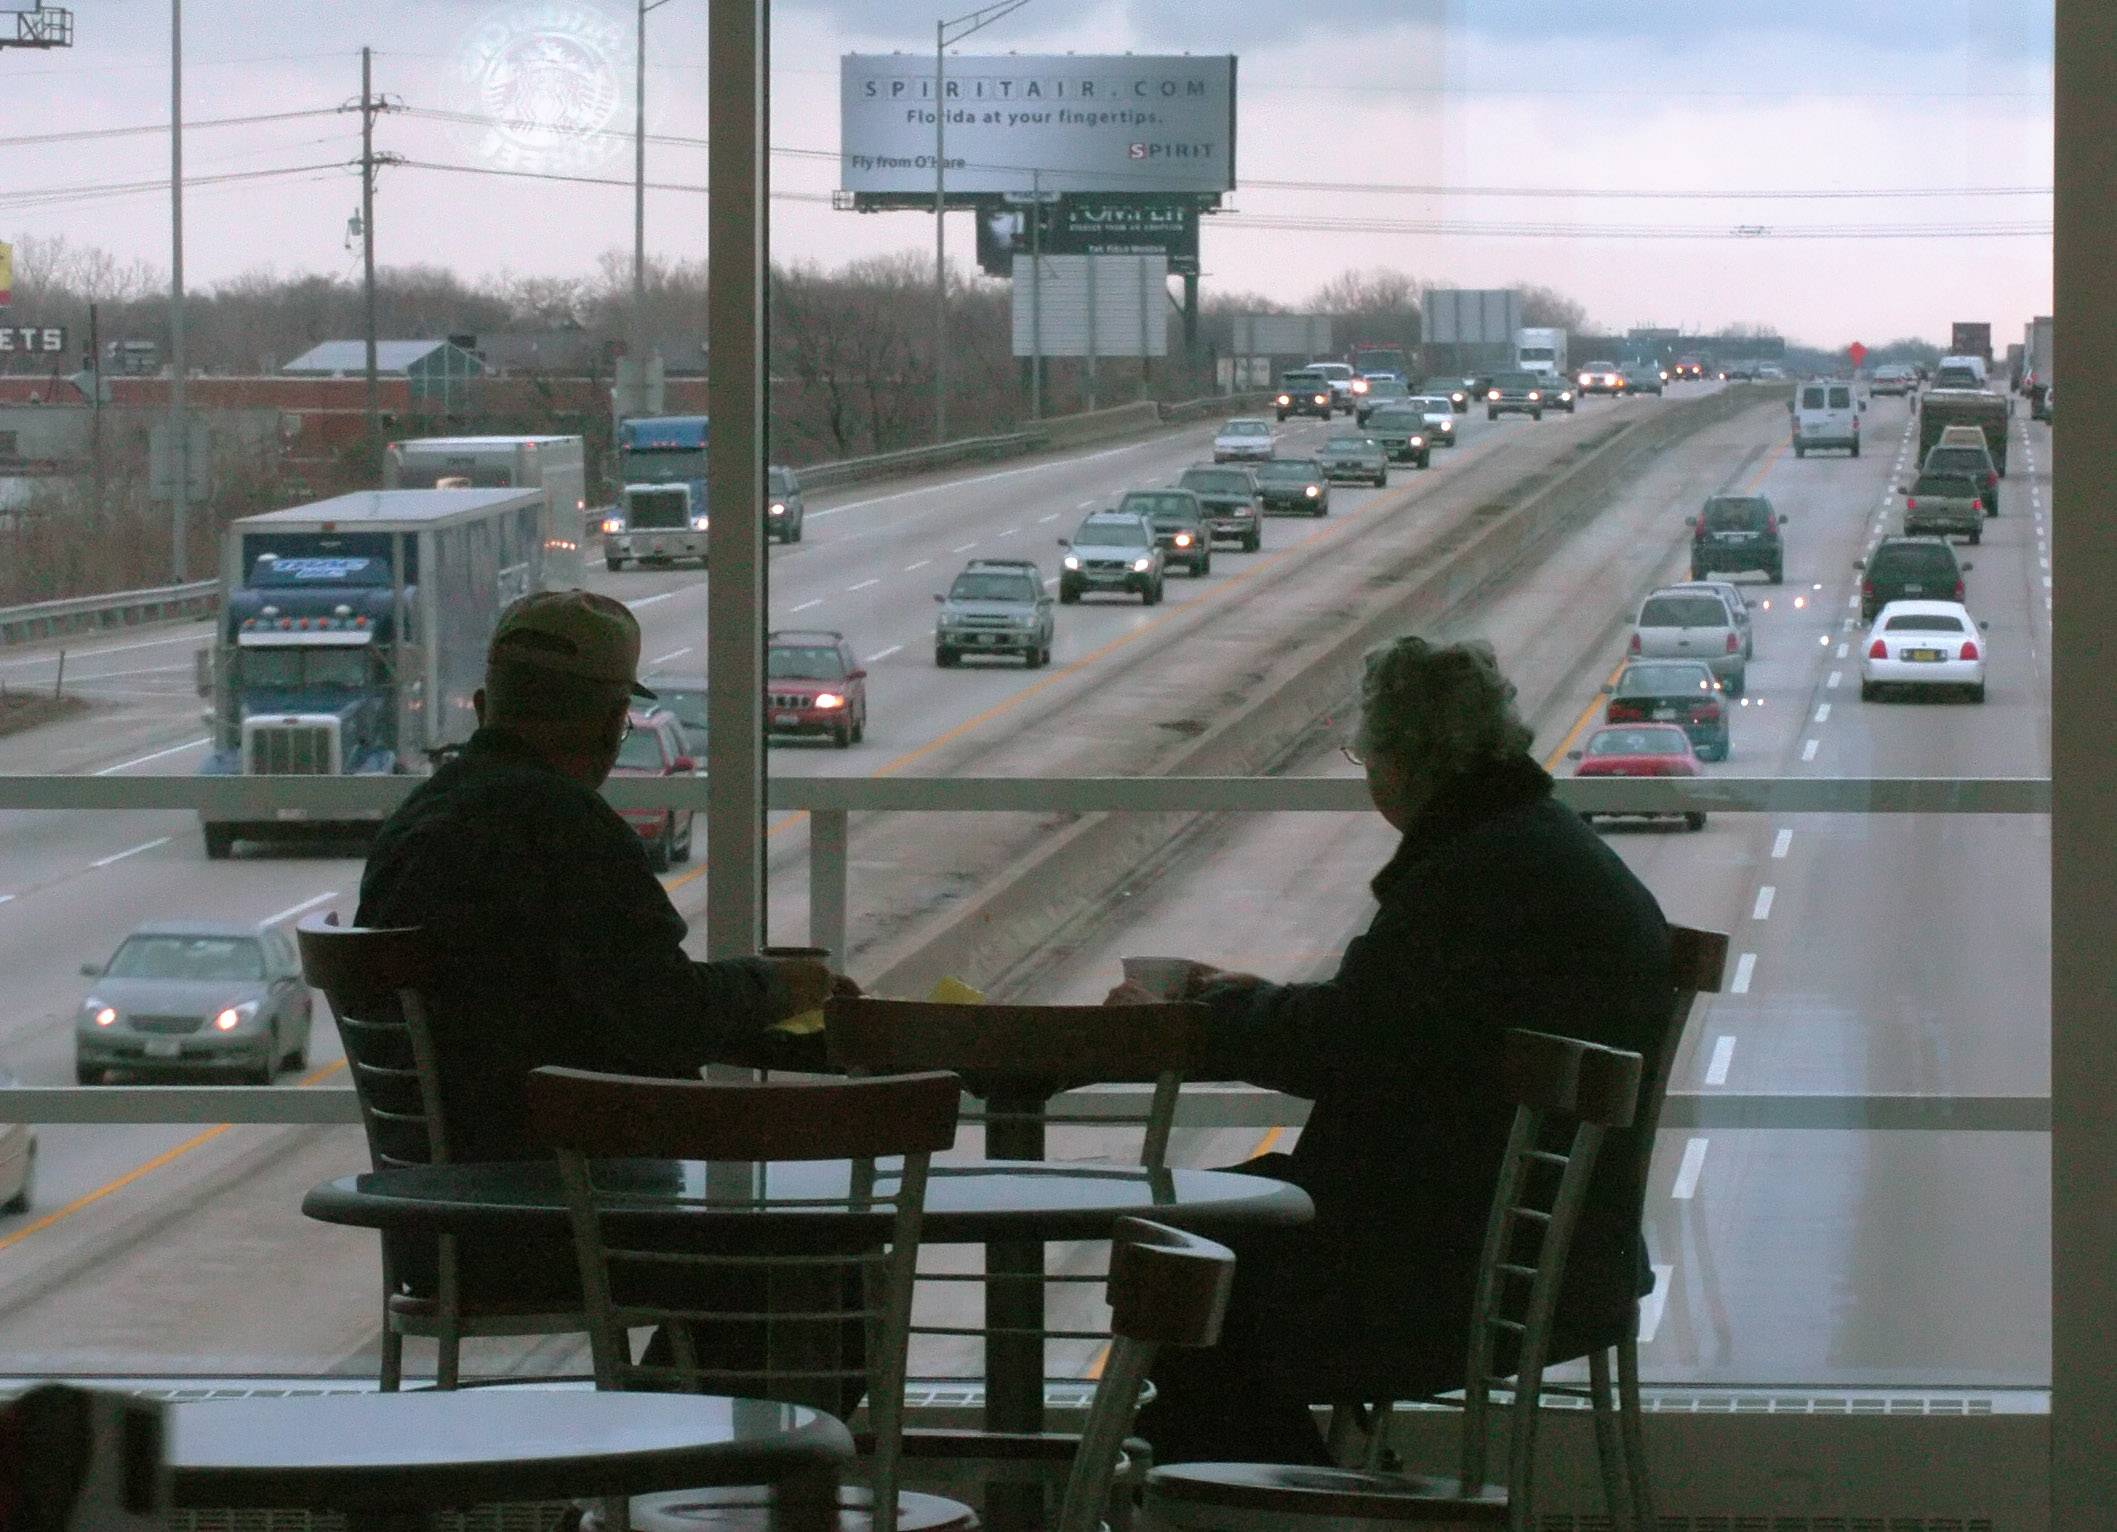 Traffic speeds by diners at the Des Plaines Oasis on the Interstate 90. Investigators are looking into how one individual got the concessions at the tollway system oases.